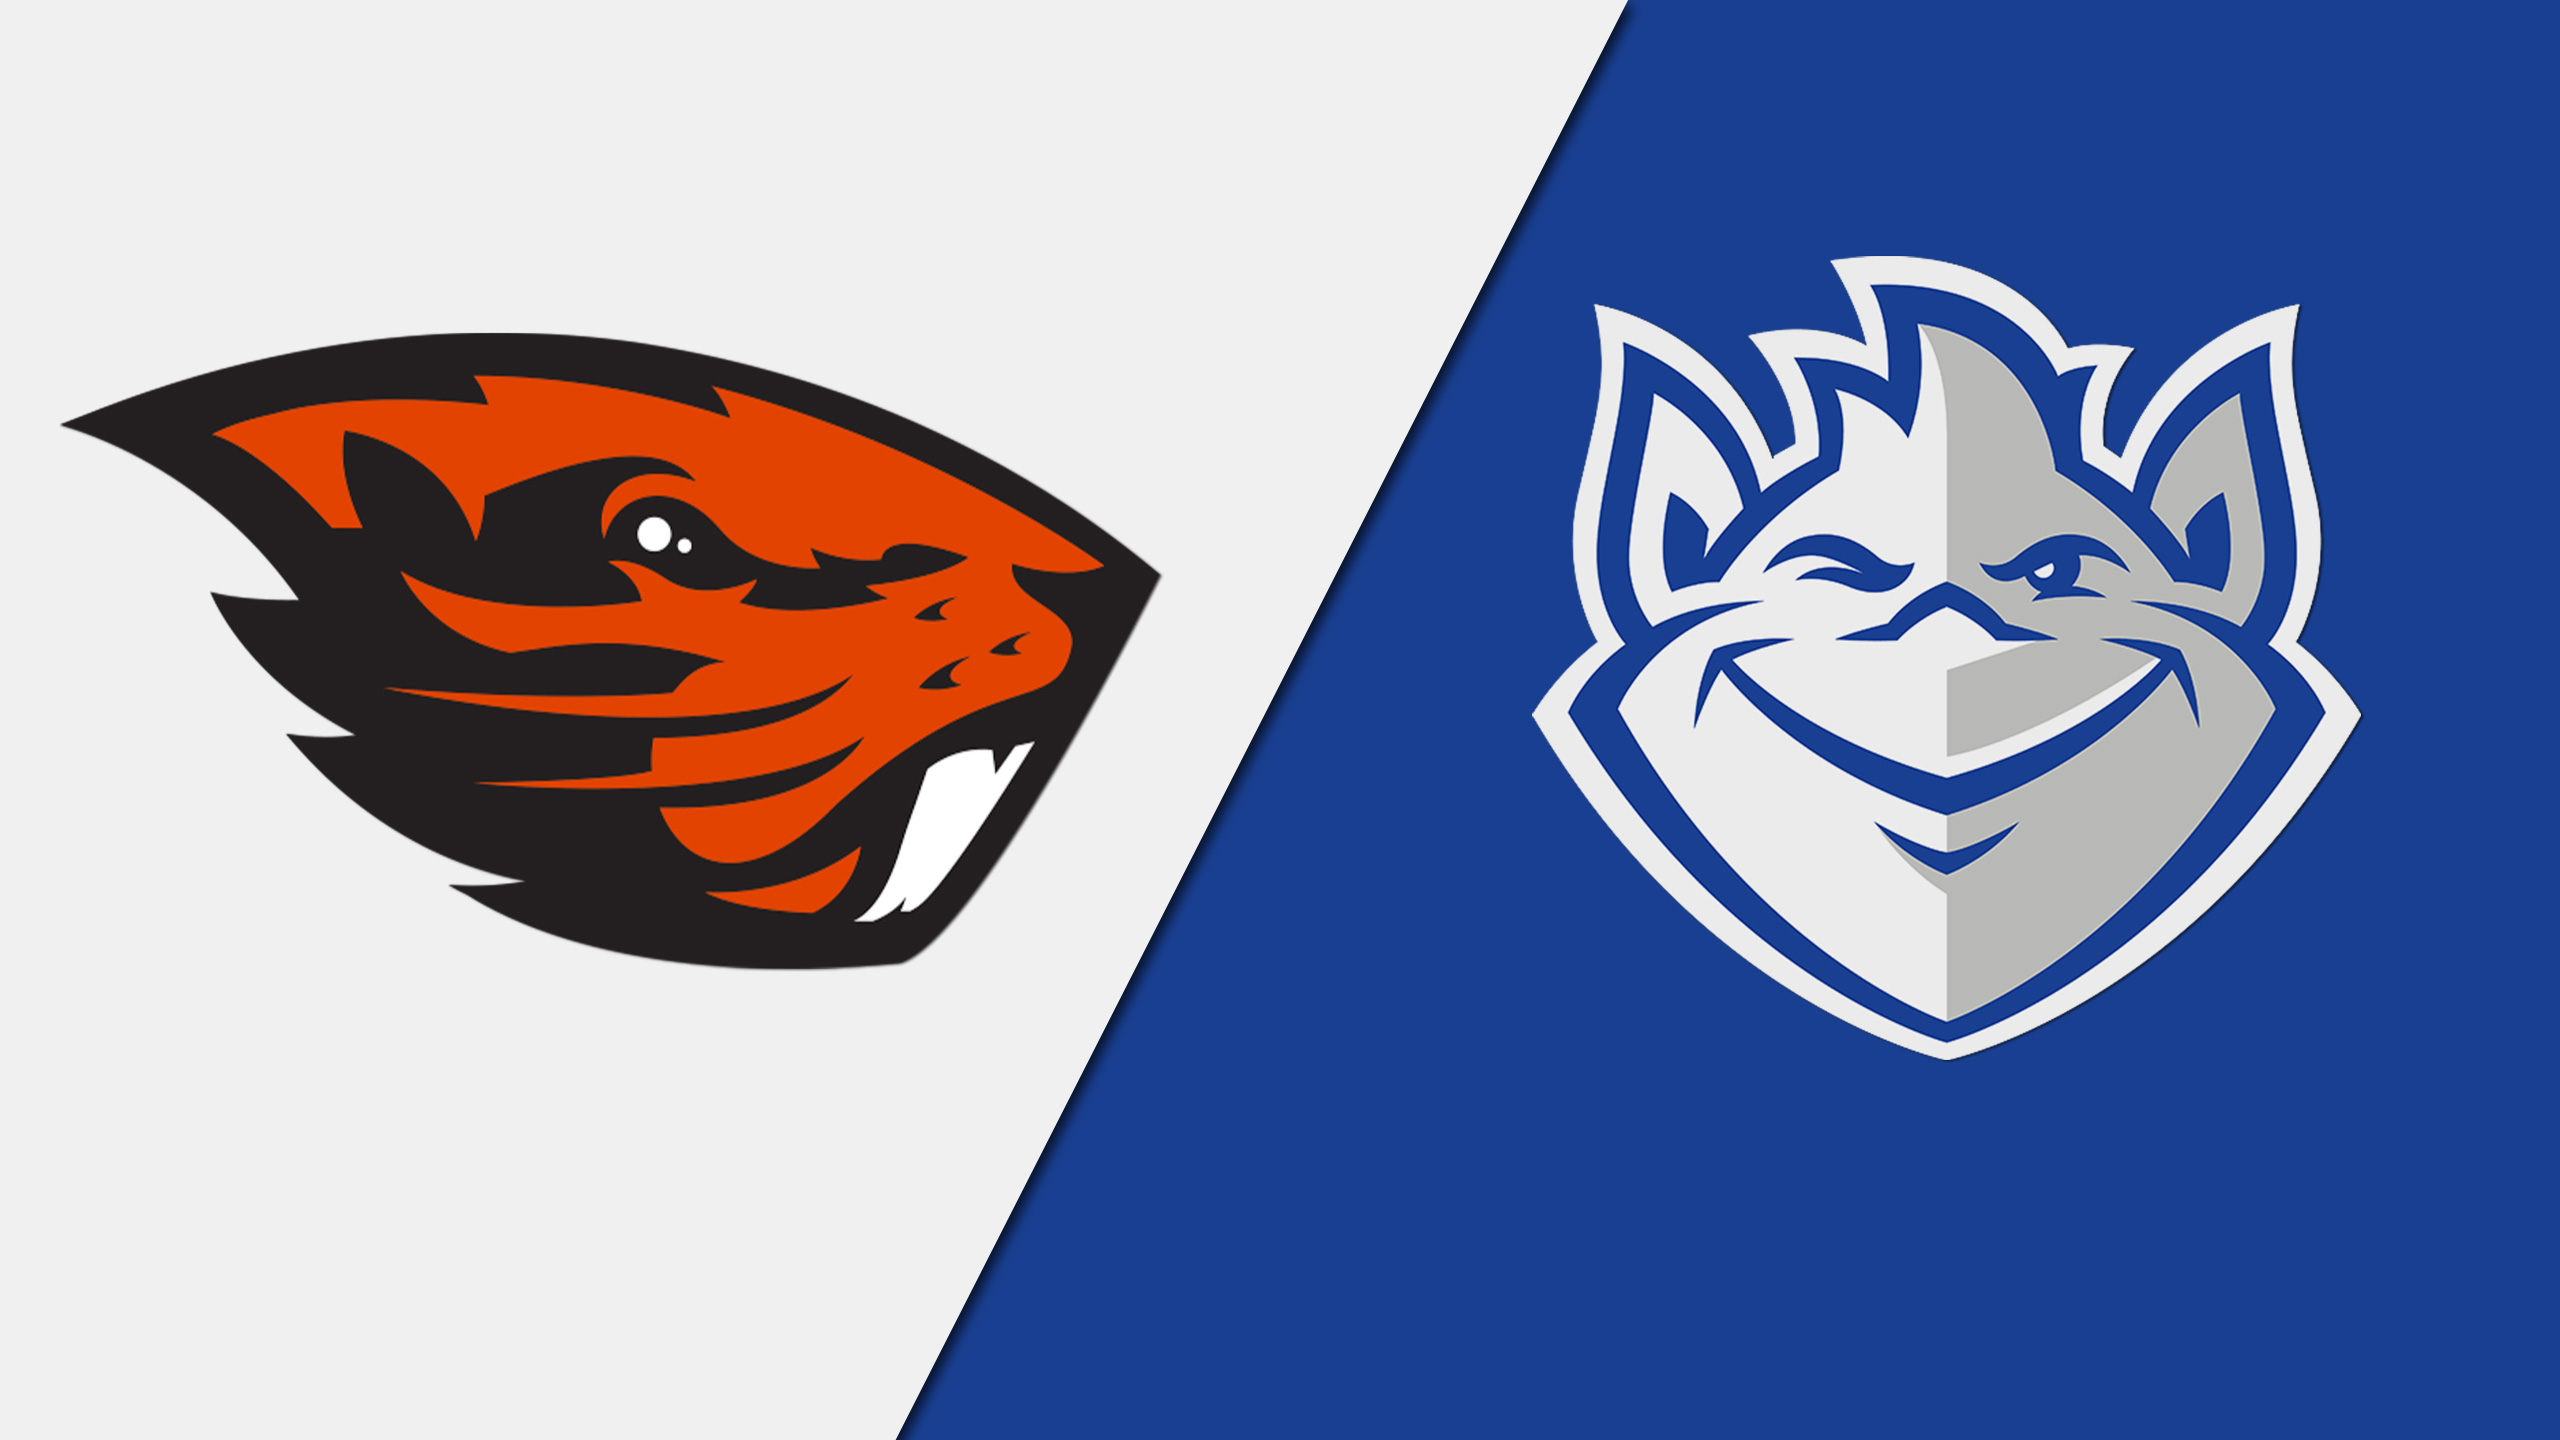 Oregon State vs. Saint Louis (M Basketball)